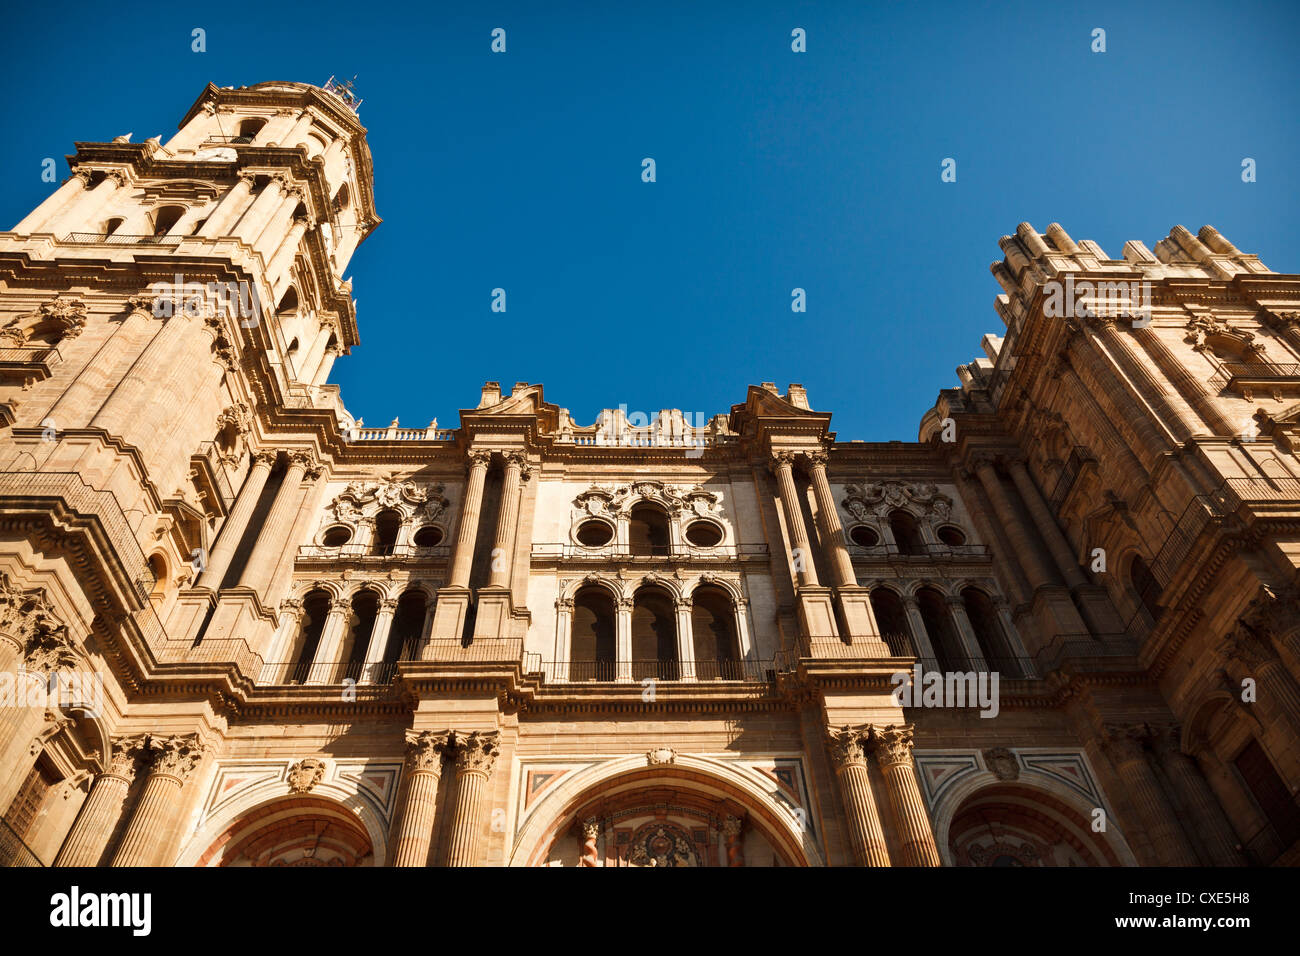 Malaga Cathedral low angle view, Malaga, Andalusia, Spain, Europe. - Stock Image